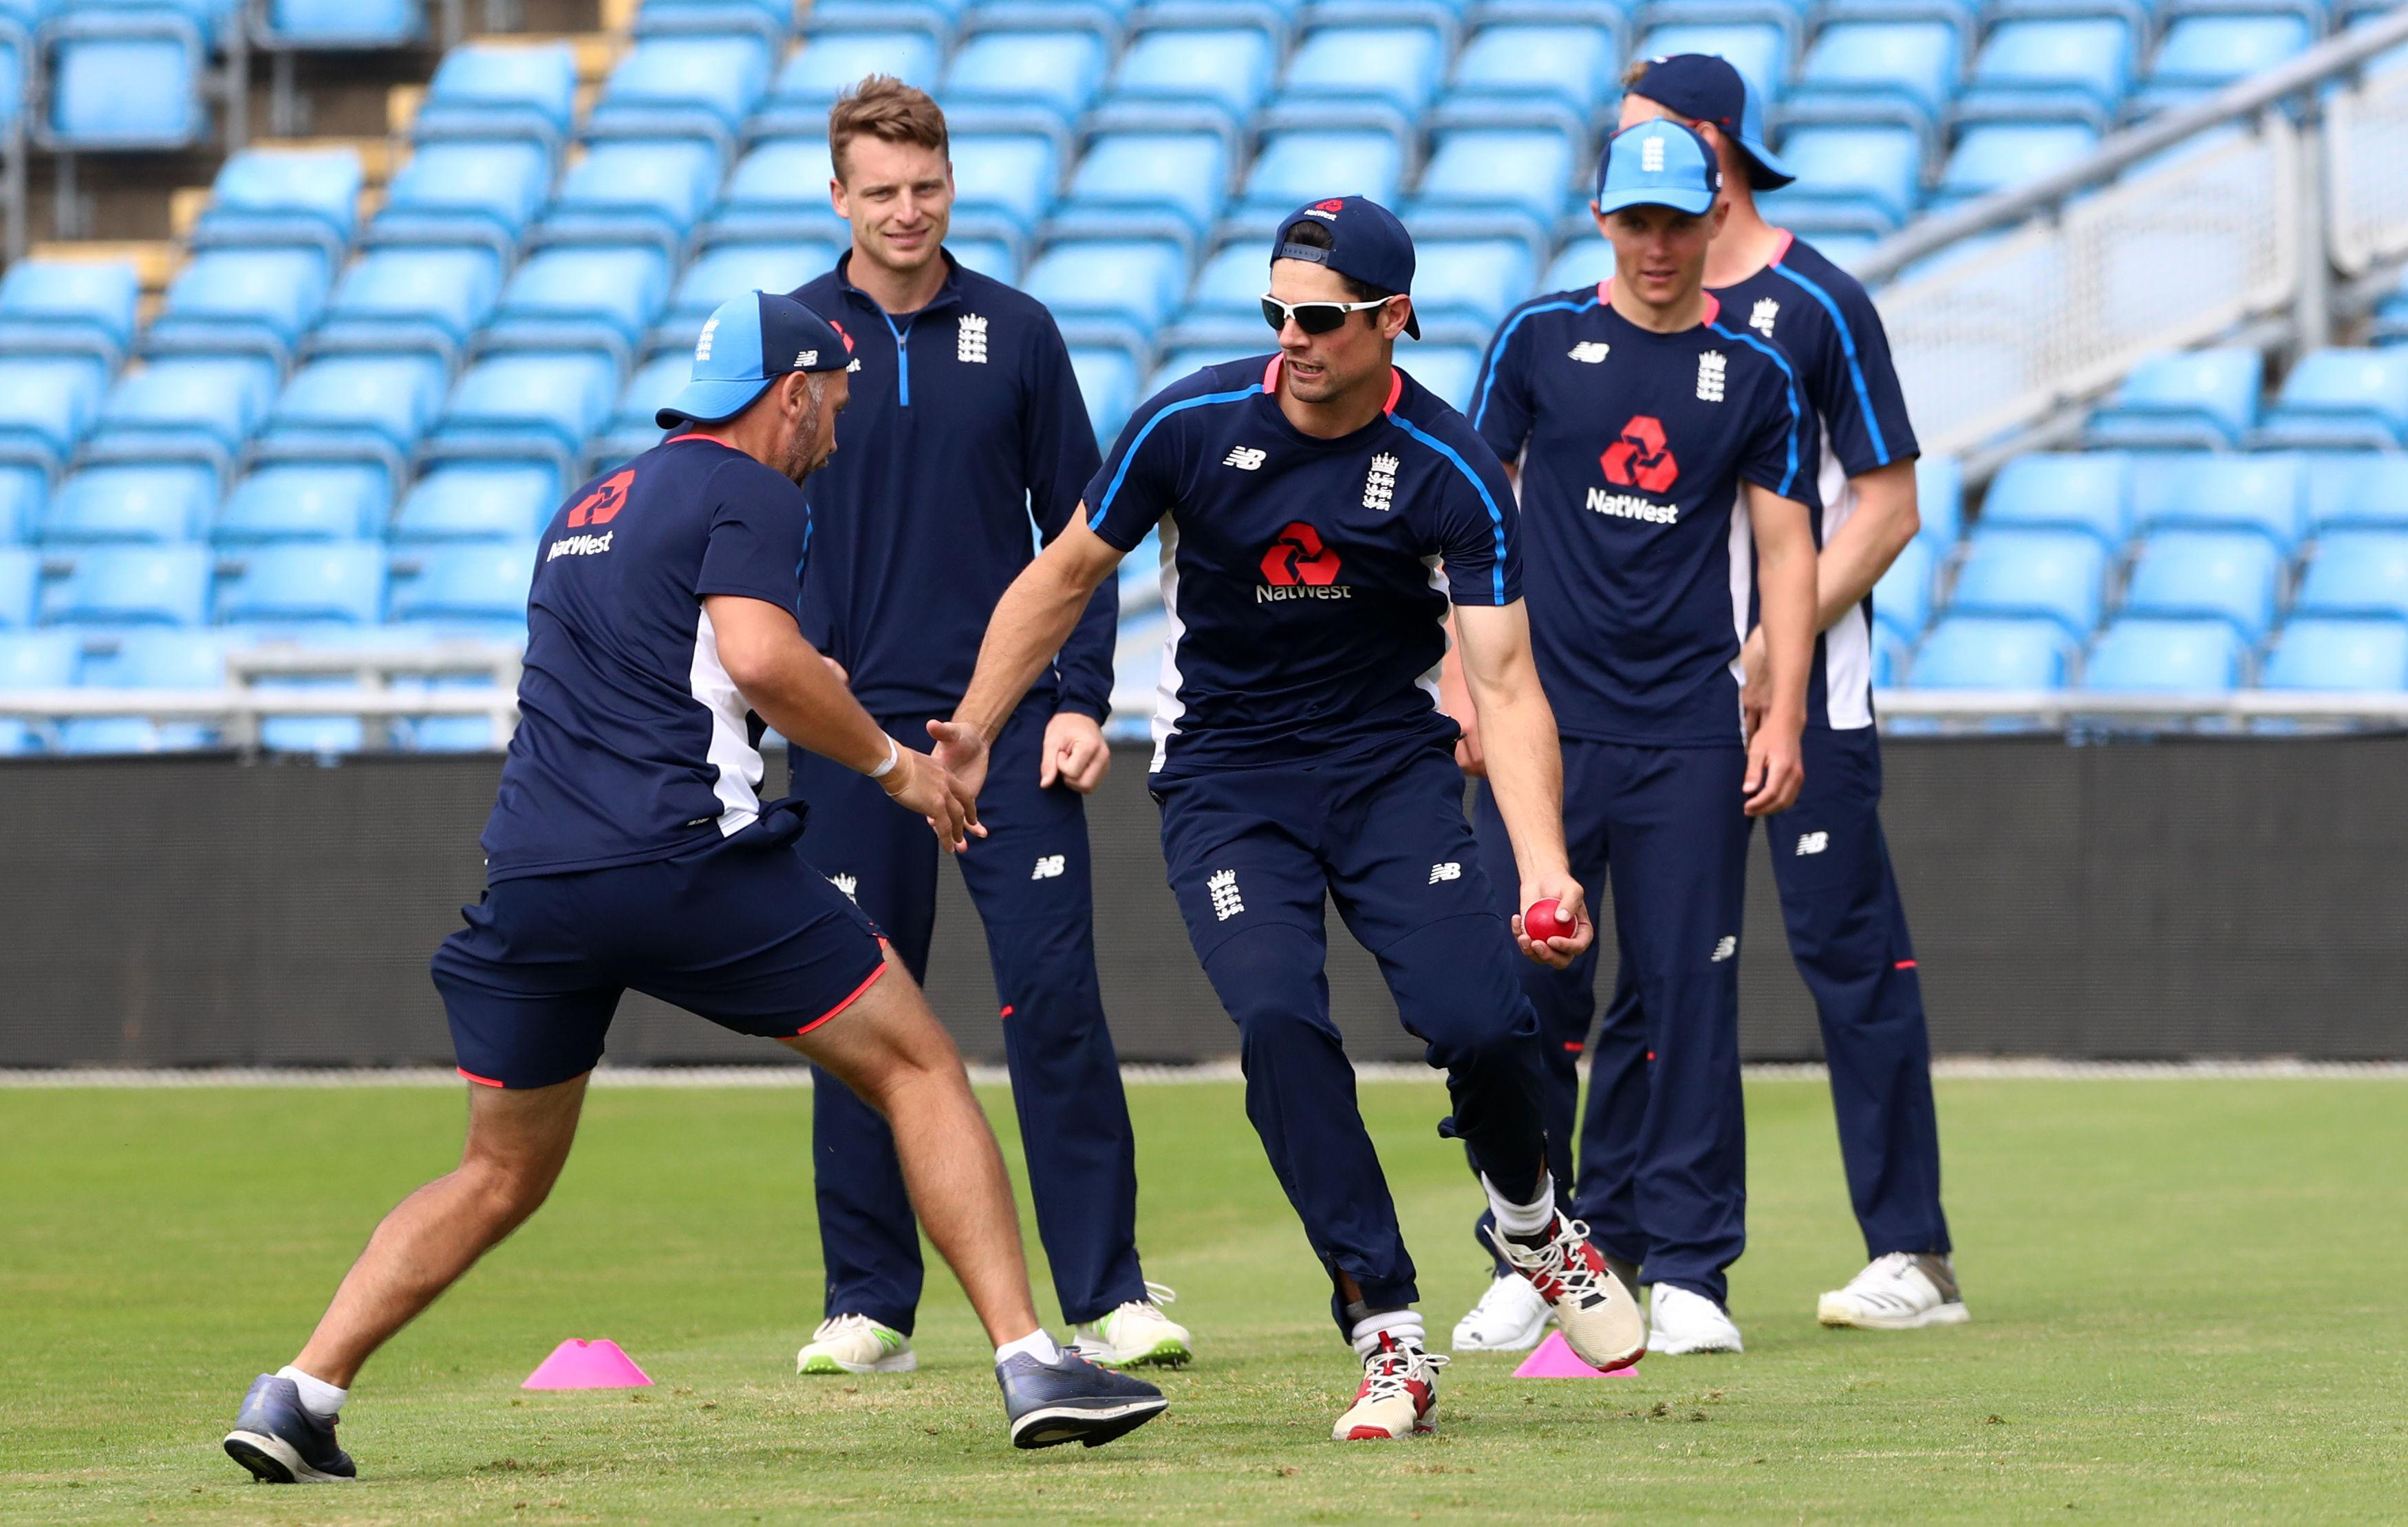 England need a much-improved performance at Headingley after their thrashing at Lord's